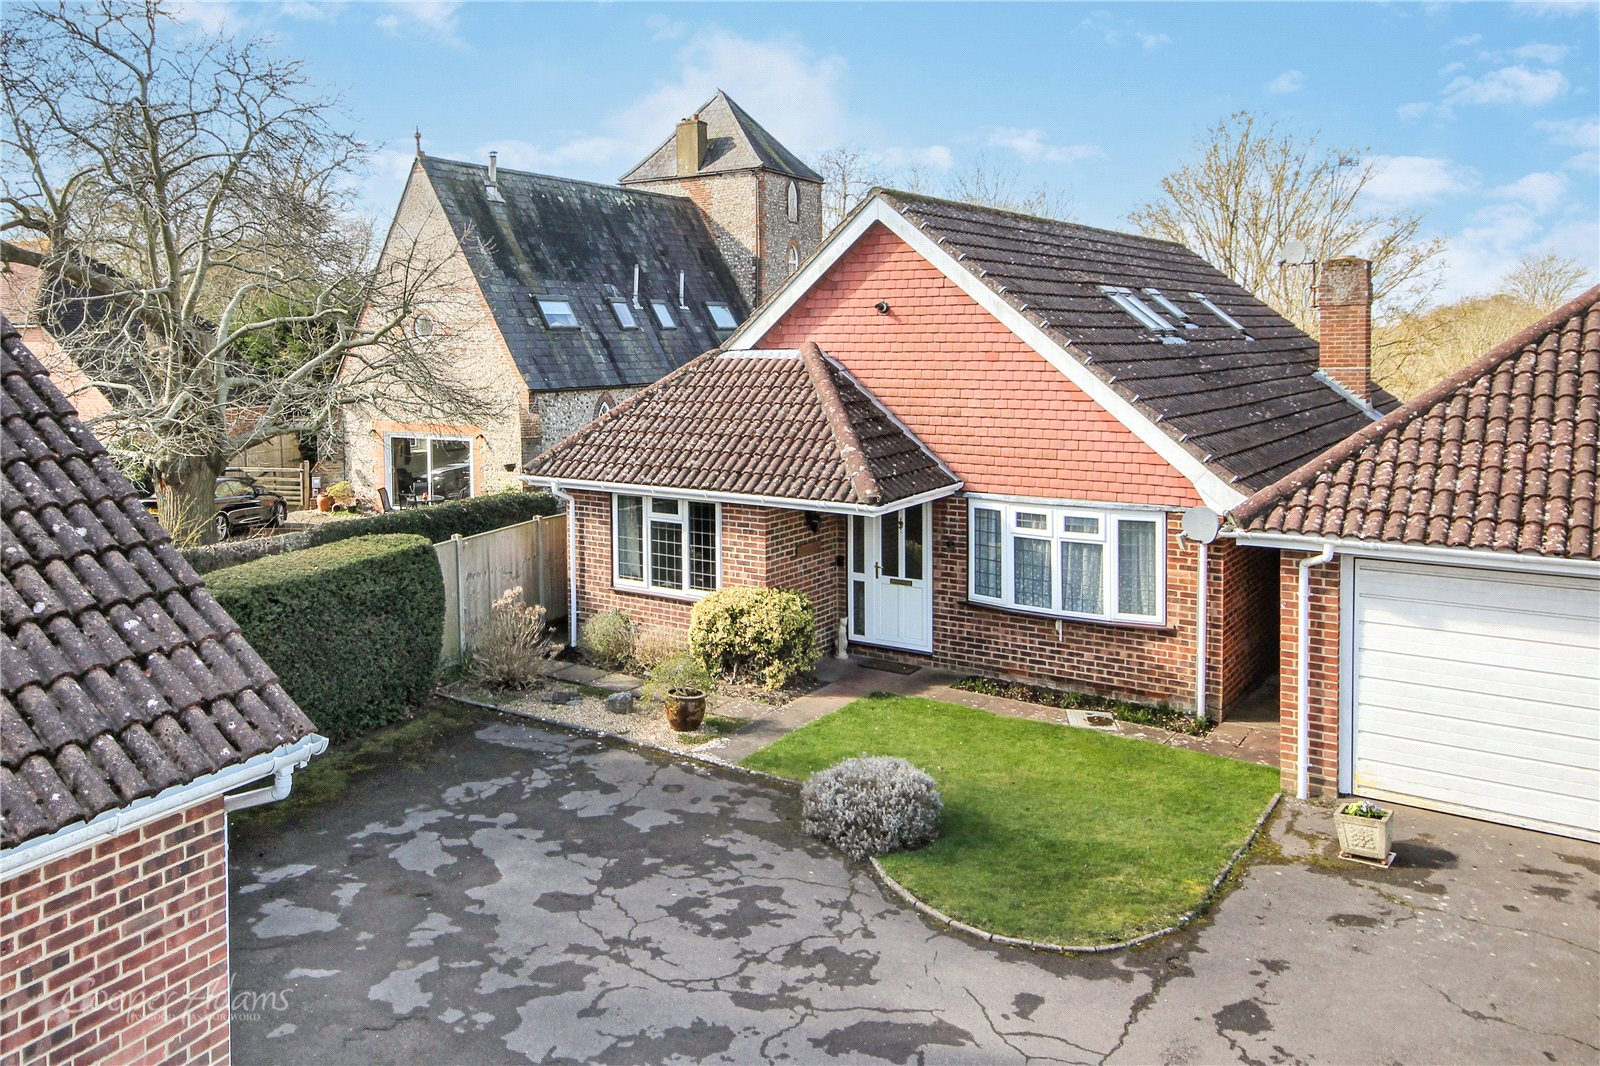 3 bed bungalow for sale in Chapel Walk, Angmering, BN16